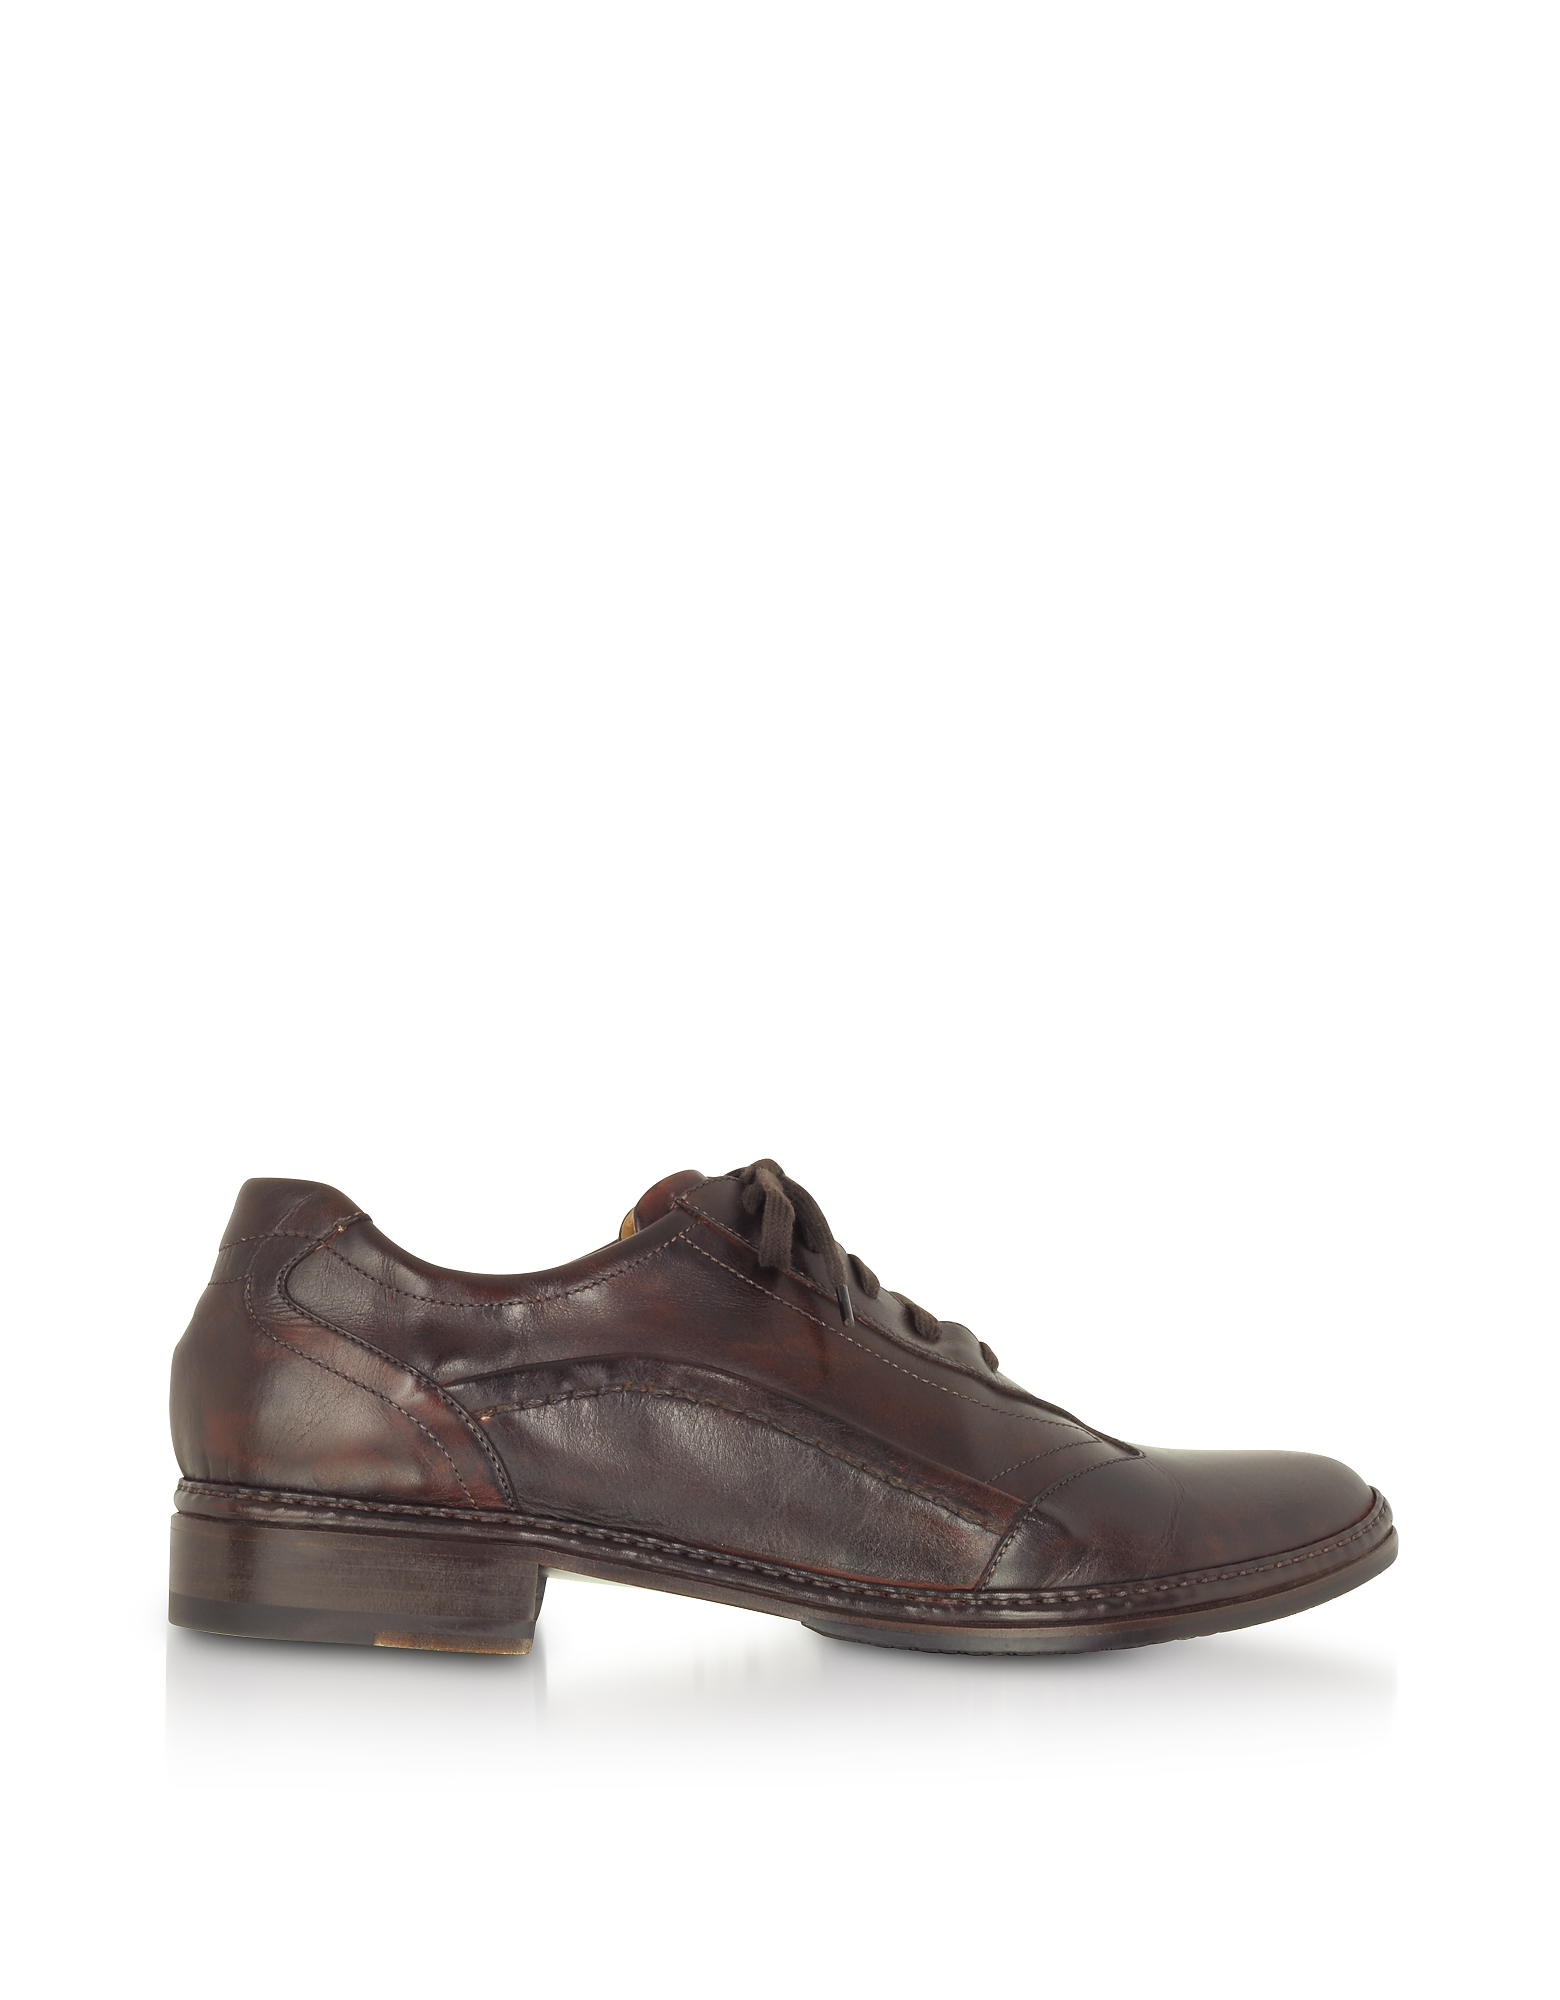 Dark Brown Italian Handmade Leather Lace-up Shoes